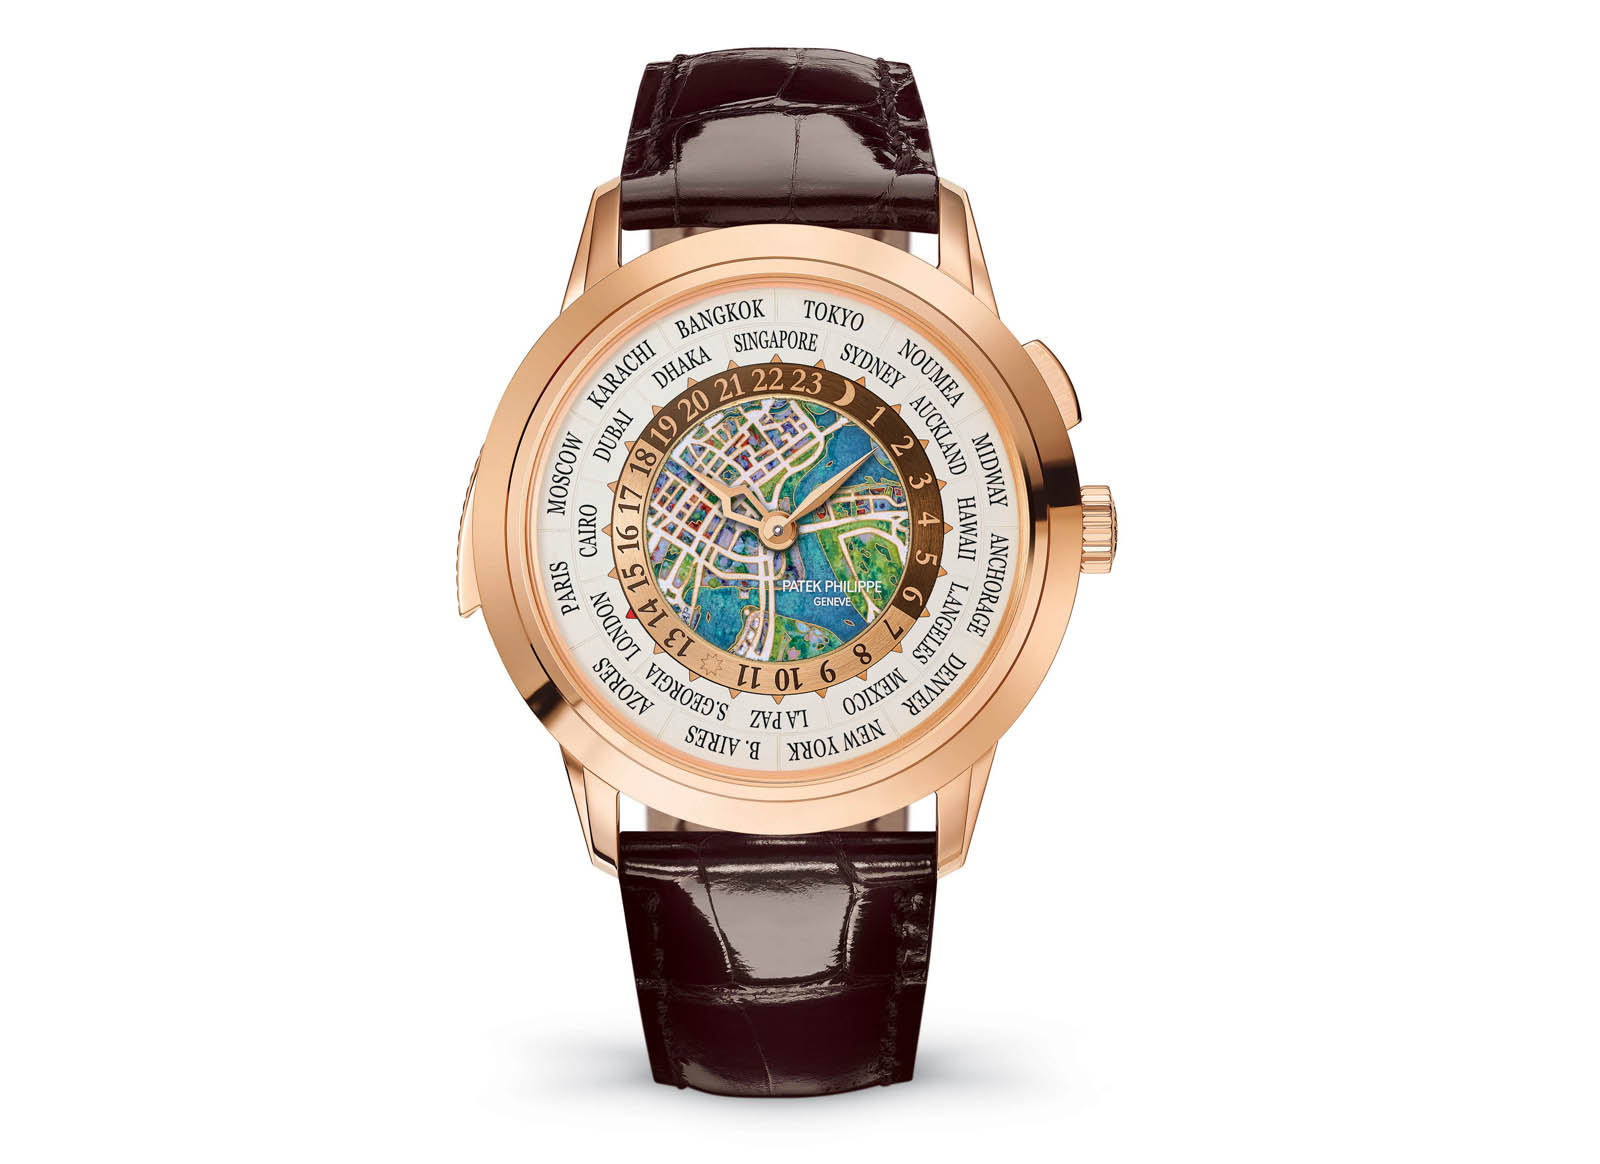 Patek Philippe World Time Minute Repeater Singapore 2019 Ref. 5531R